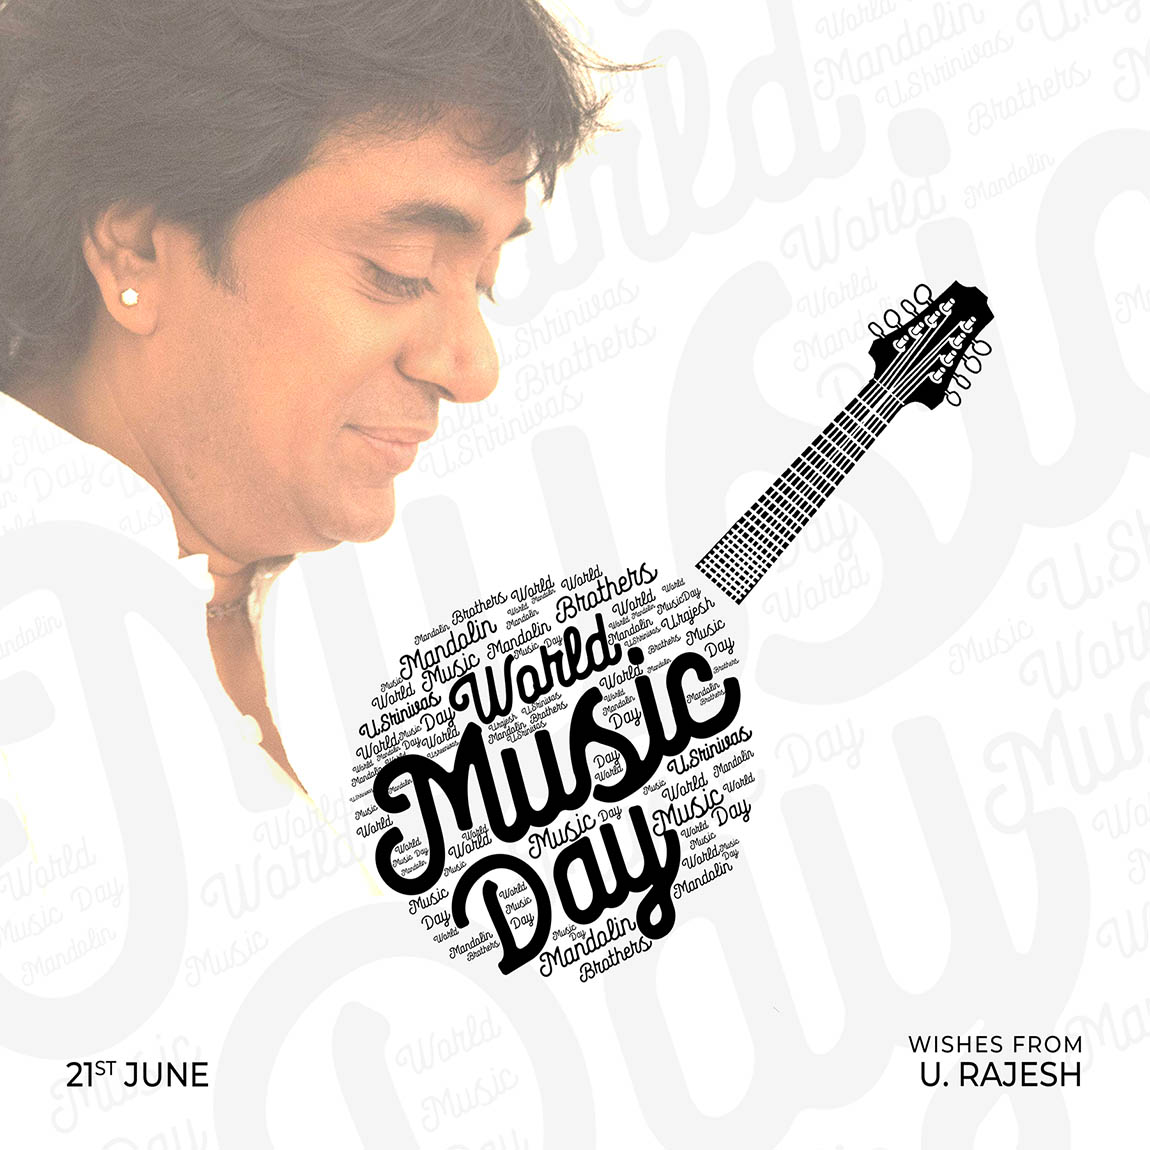 happy-world-music-day-mandolin-u-rajesh